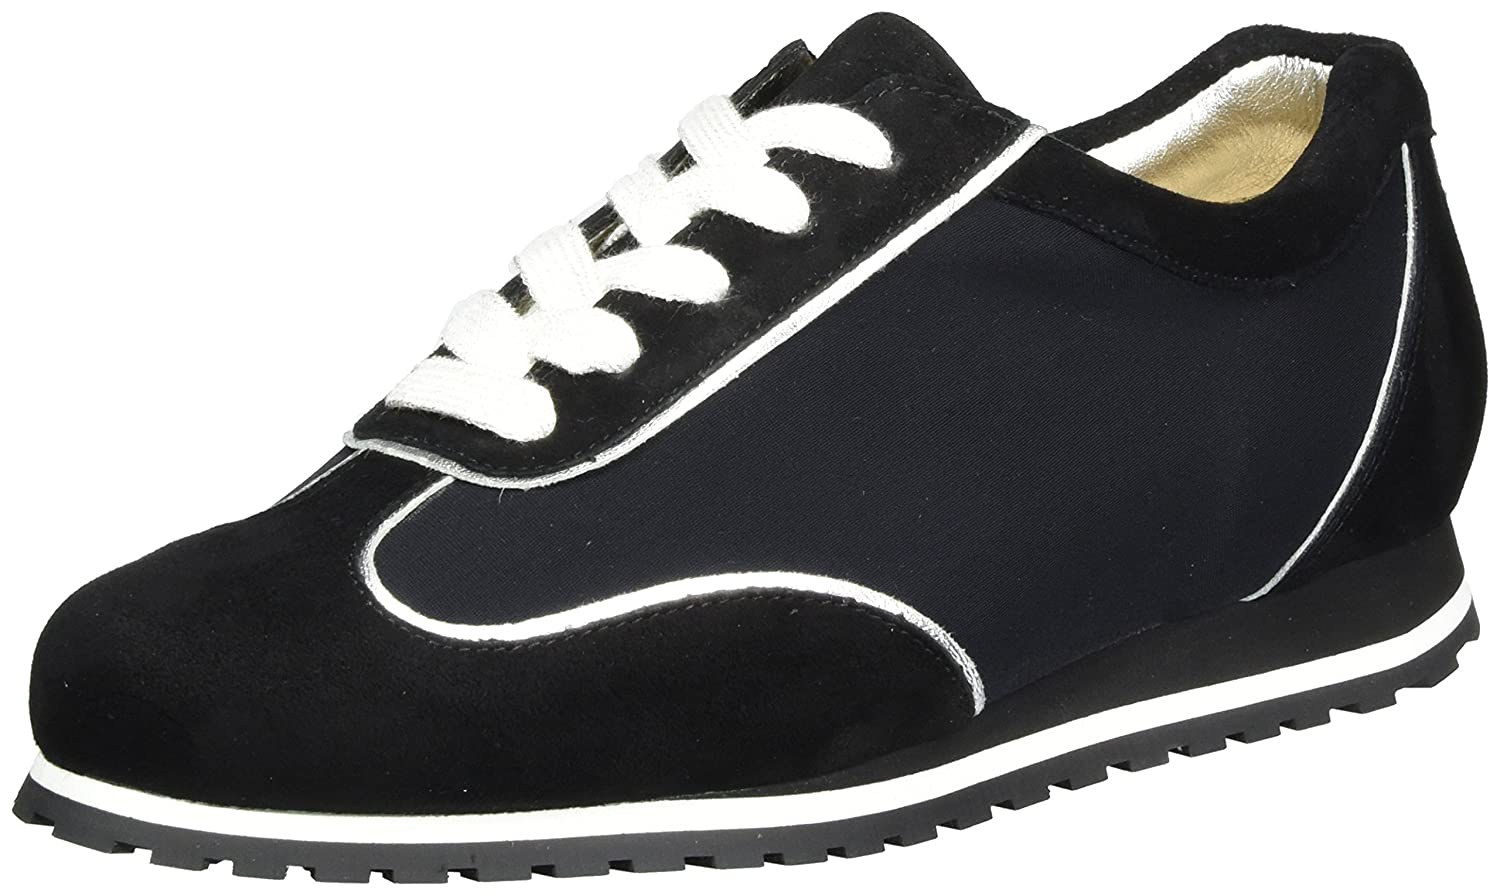 Hassia Piacenza, Weite G, Sneakers Basses (Schwarz) Femme Weite Schwarz Femme (Schwarz) 4f483f2 - conorscully.space